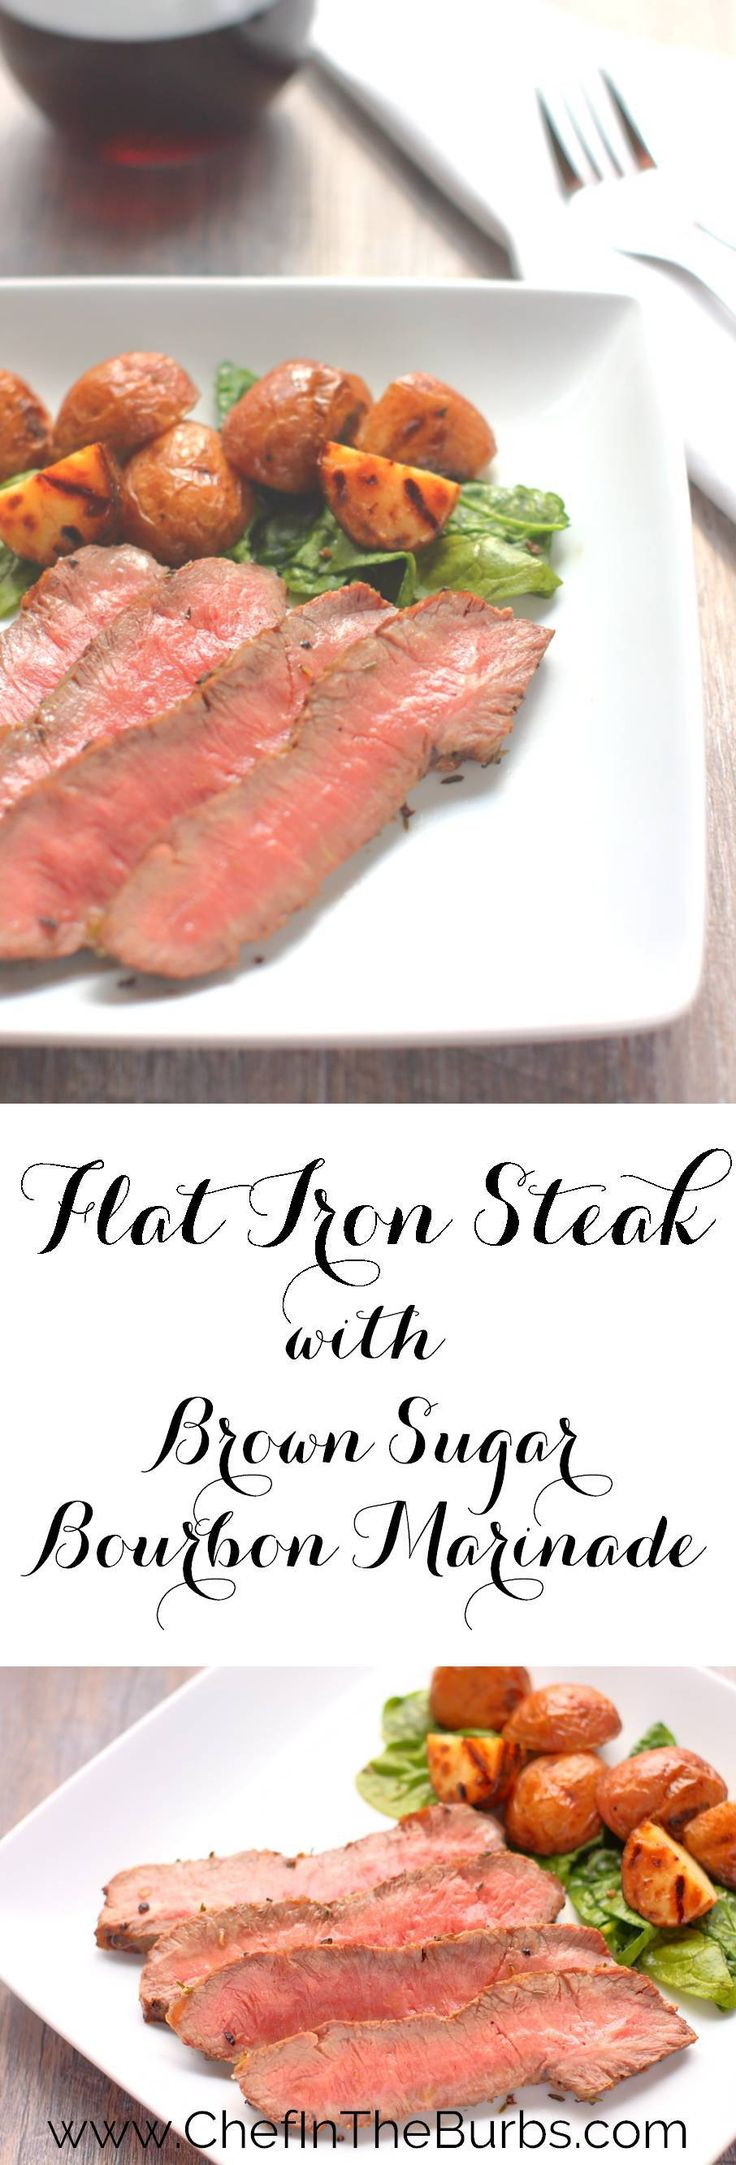 Flat iron steak is perfect for the grill. Marinate or simply salt and pepper it and you've got dinner as tender as tenderloin, half the price and twice the flavor.